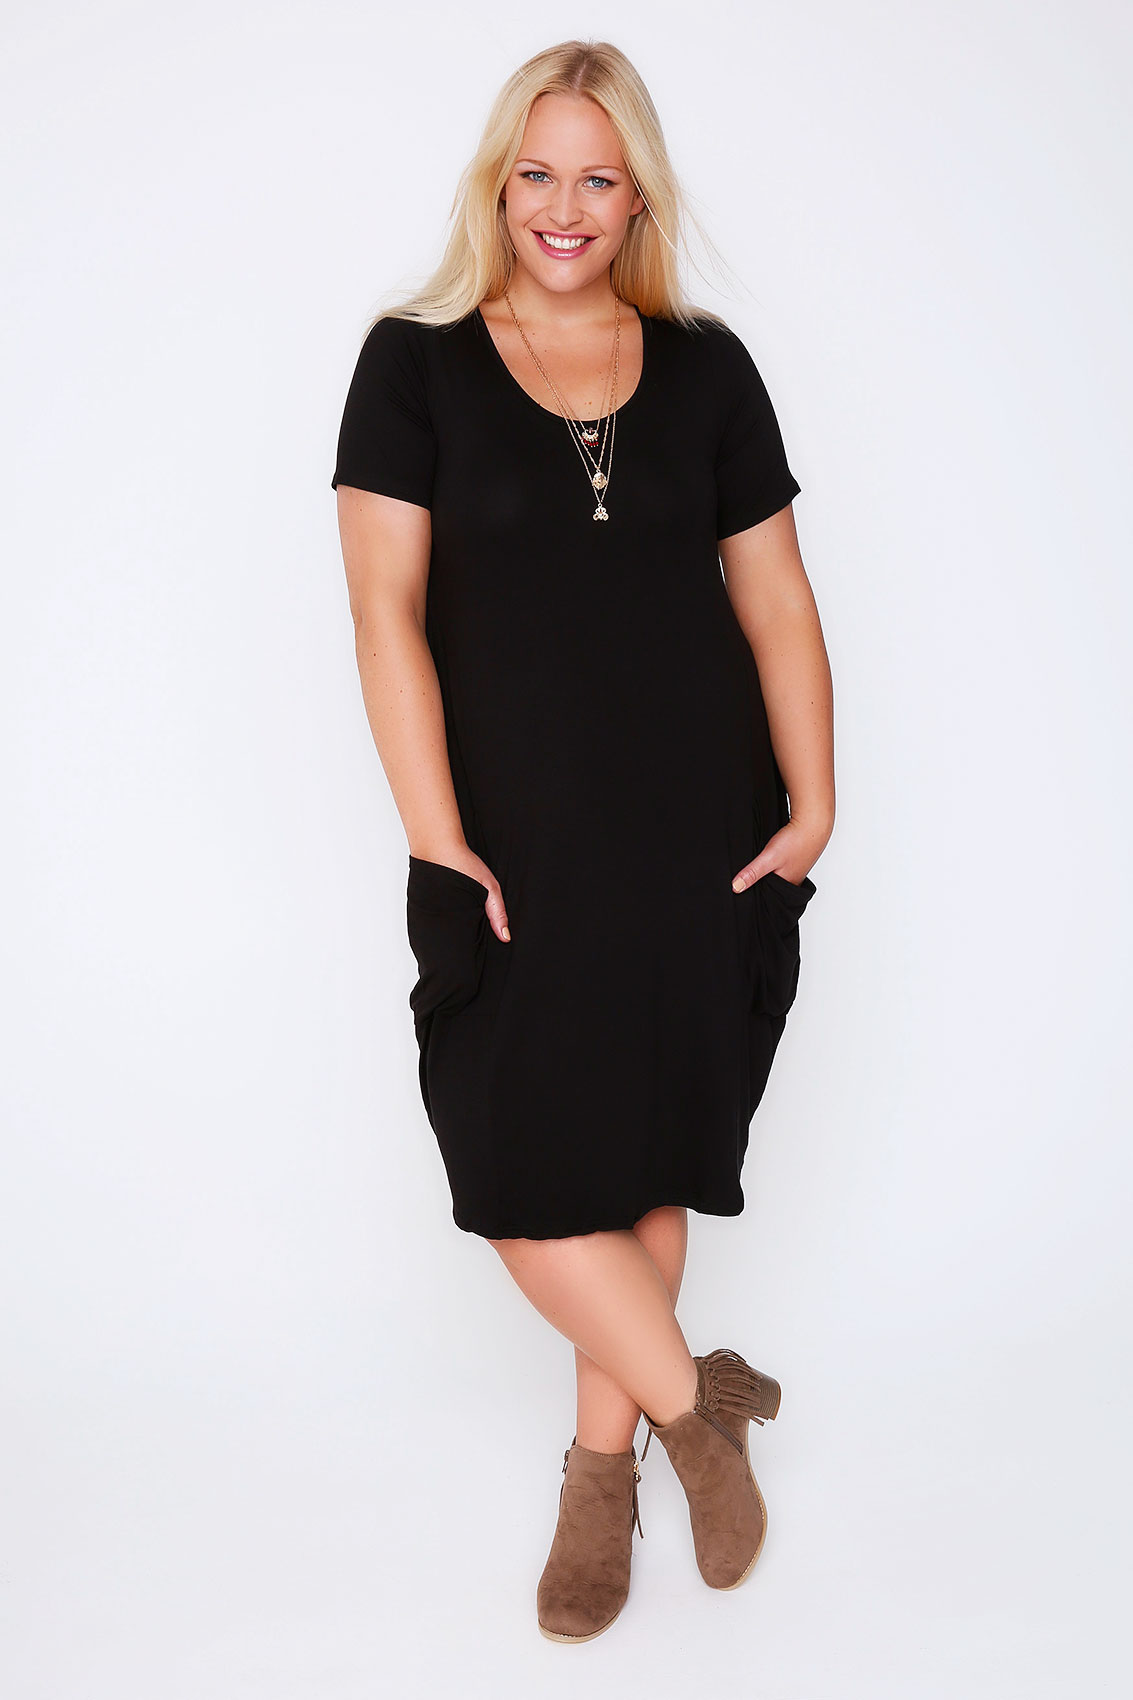 Black crew neck jersey dress Save. Was £ Now £ The Collection Black floral print jersey dress Save. £ Red Herring Maternity Black spot print jersey mini maternity dress Save. £ Wallis Black ring ruched shift dress Save. Was £ Now £